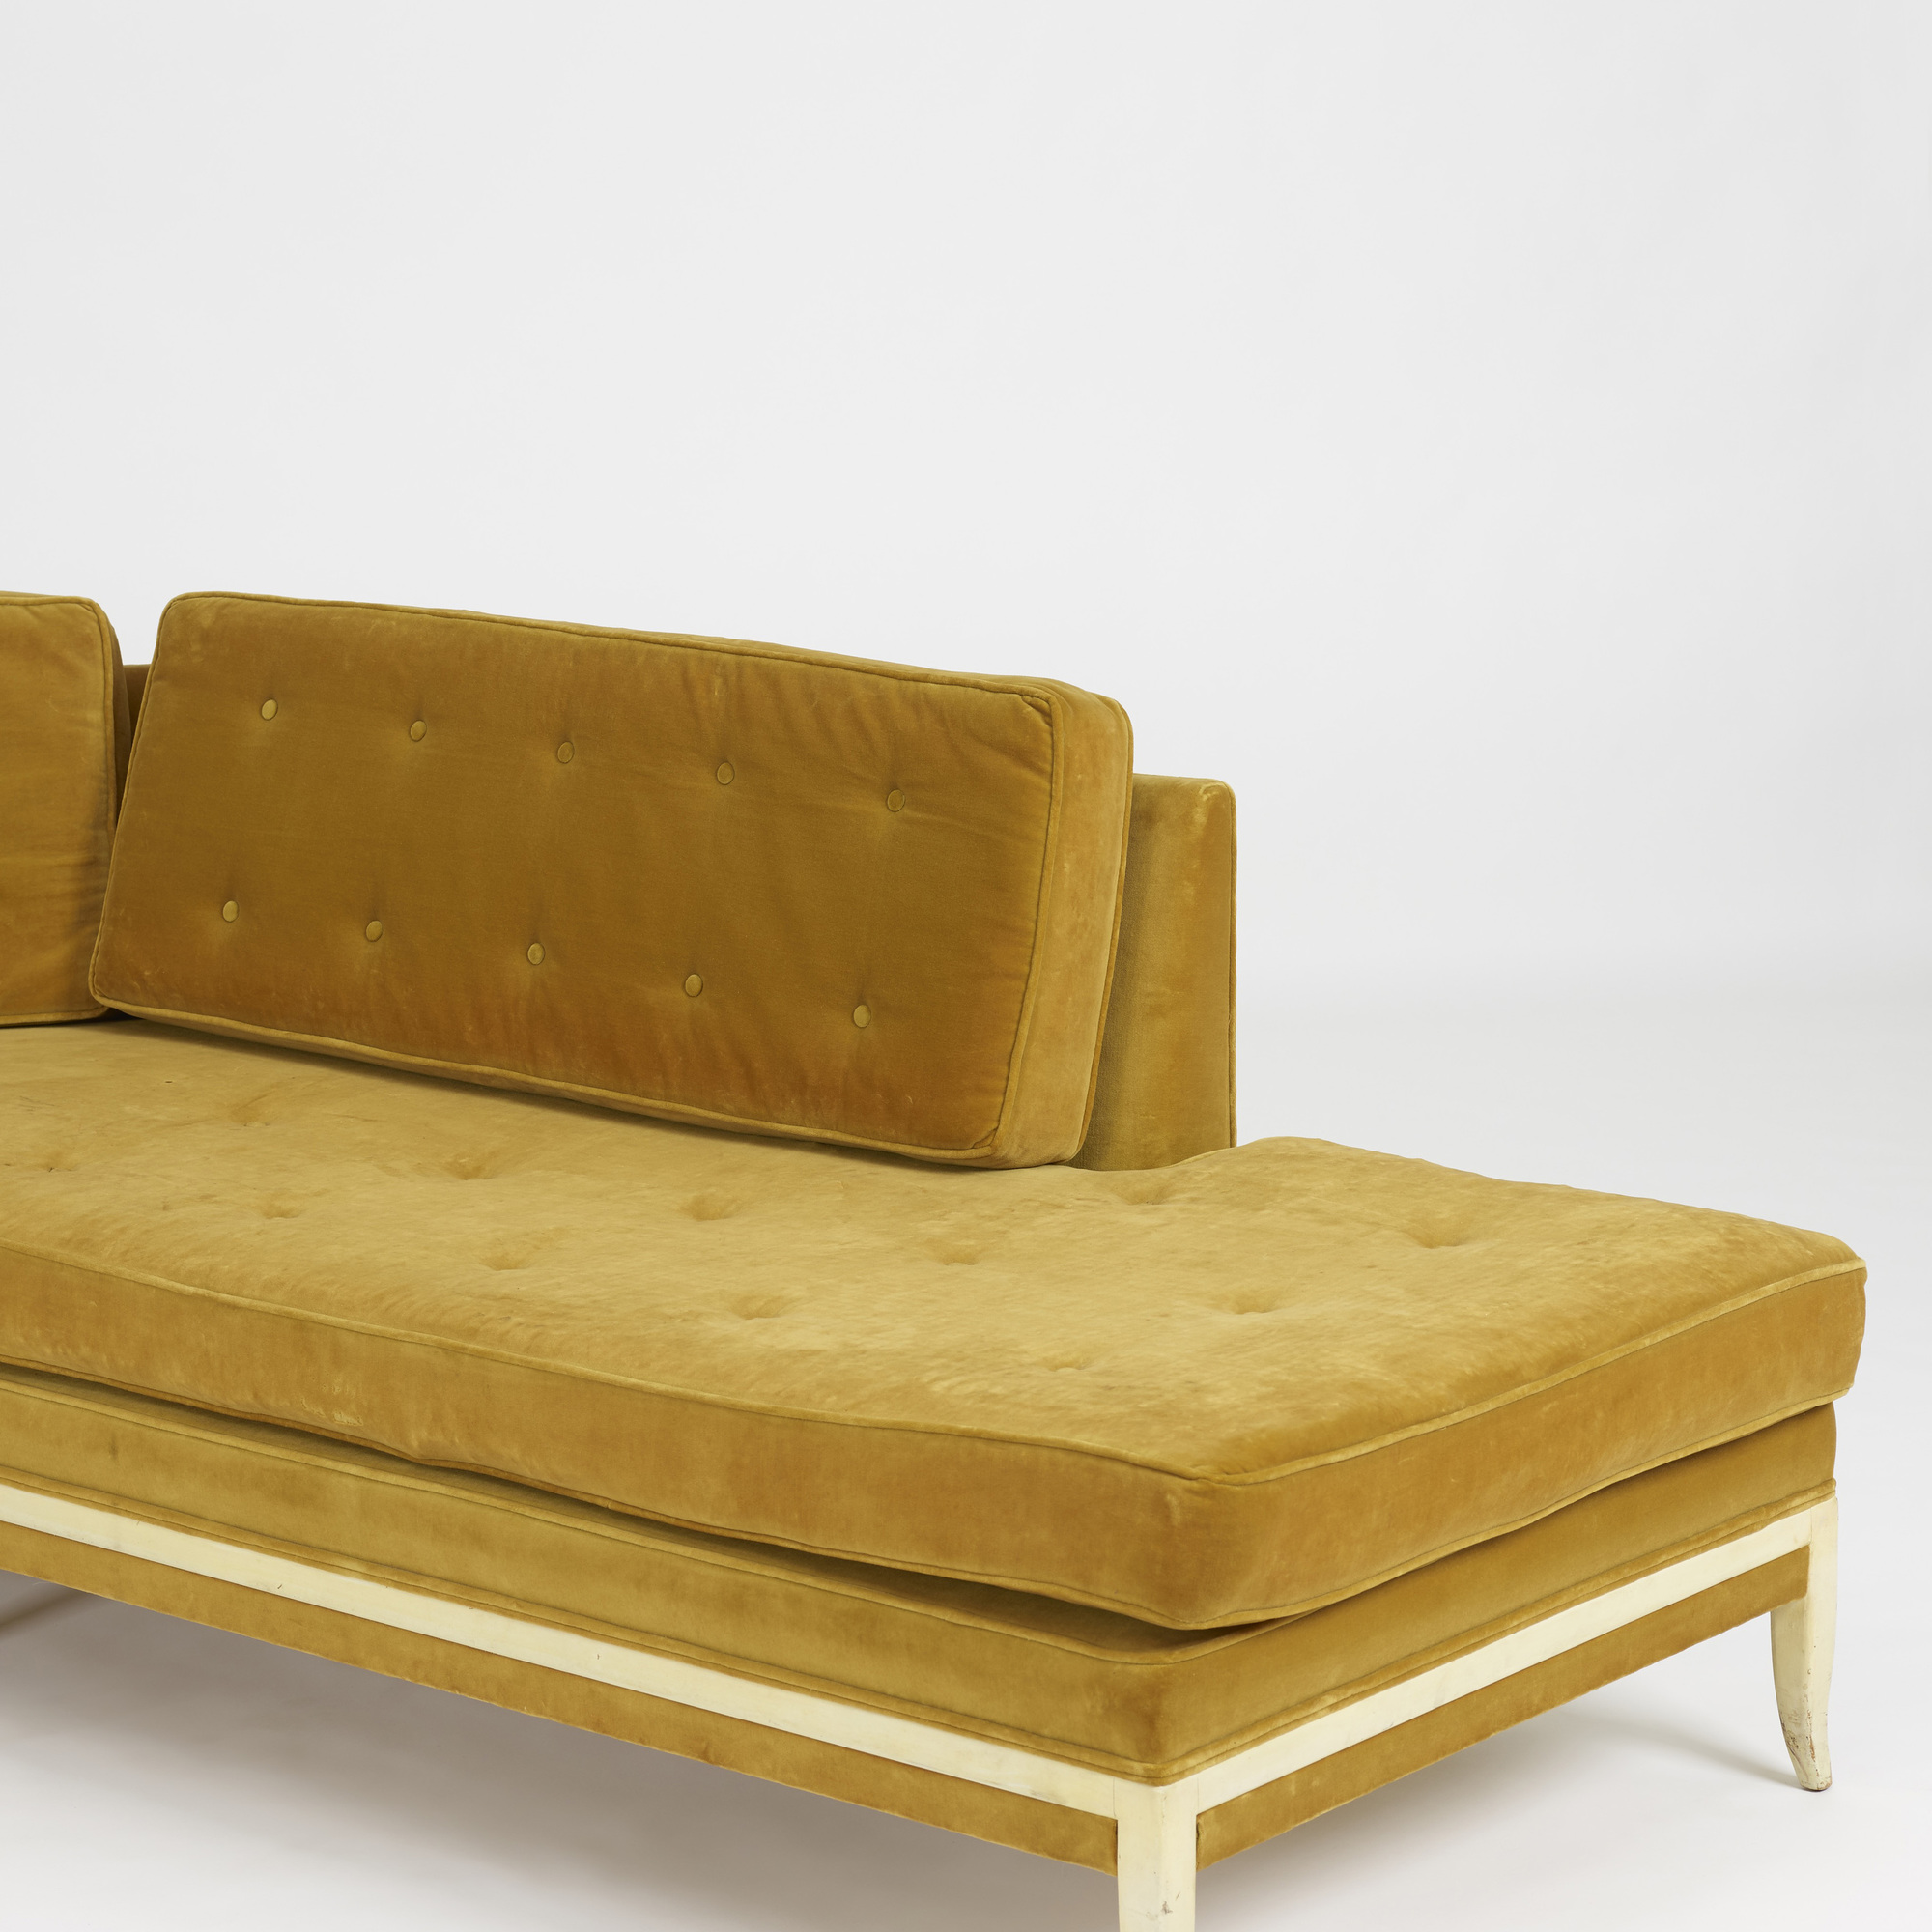 392: Tommi Parzinger / sectional sofa (3 of 3)